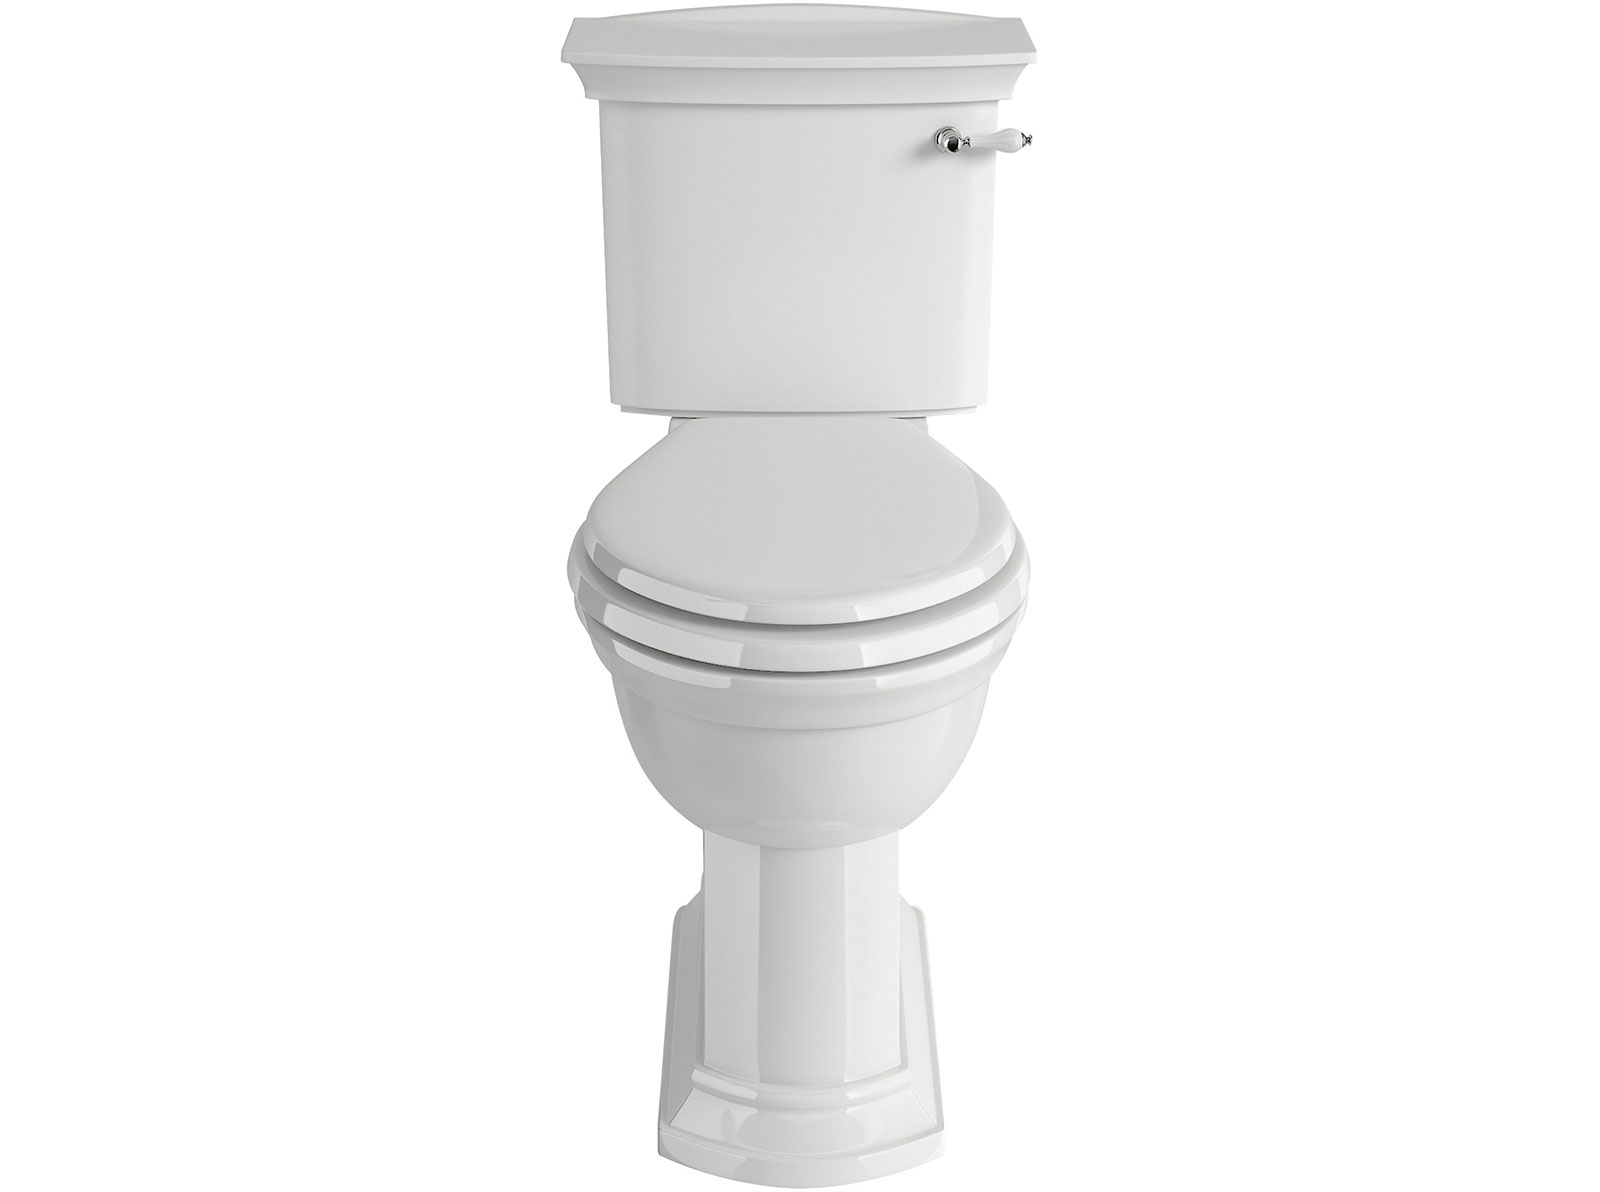 Heritage Blenheim Close Coupled Standard Height WC | Leigh Plumbing ...